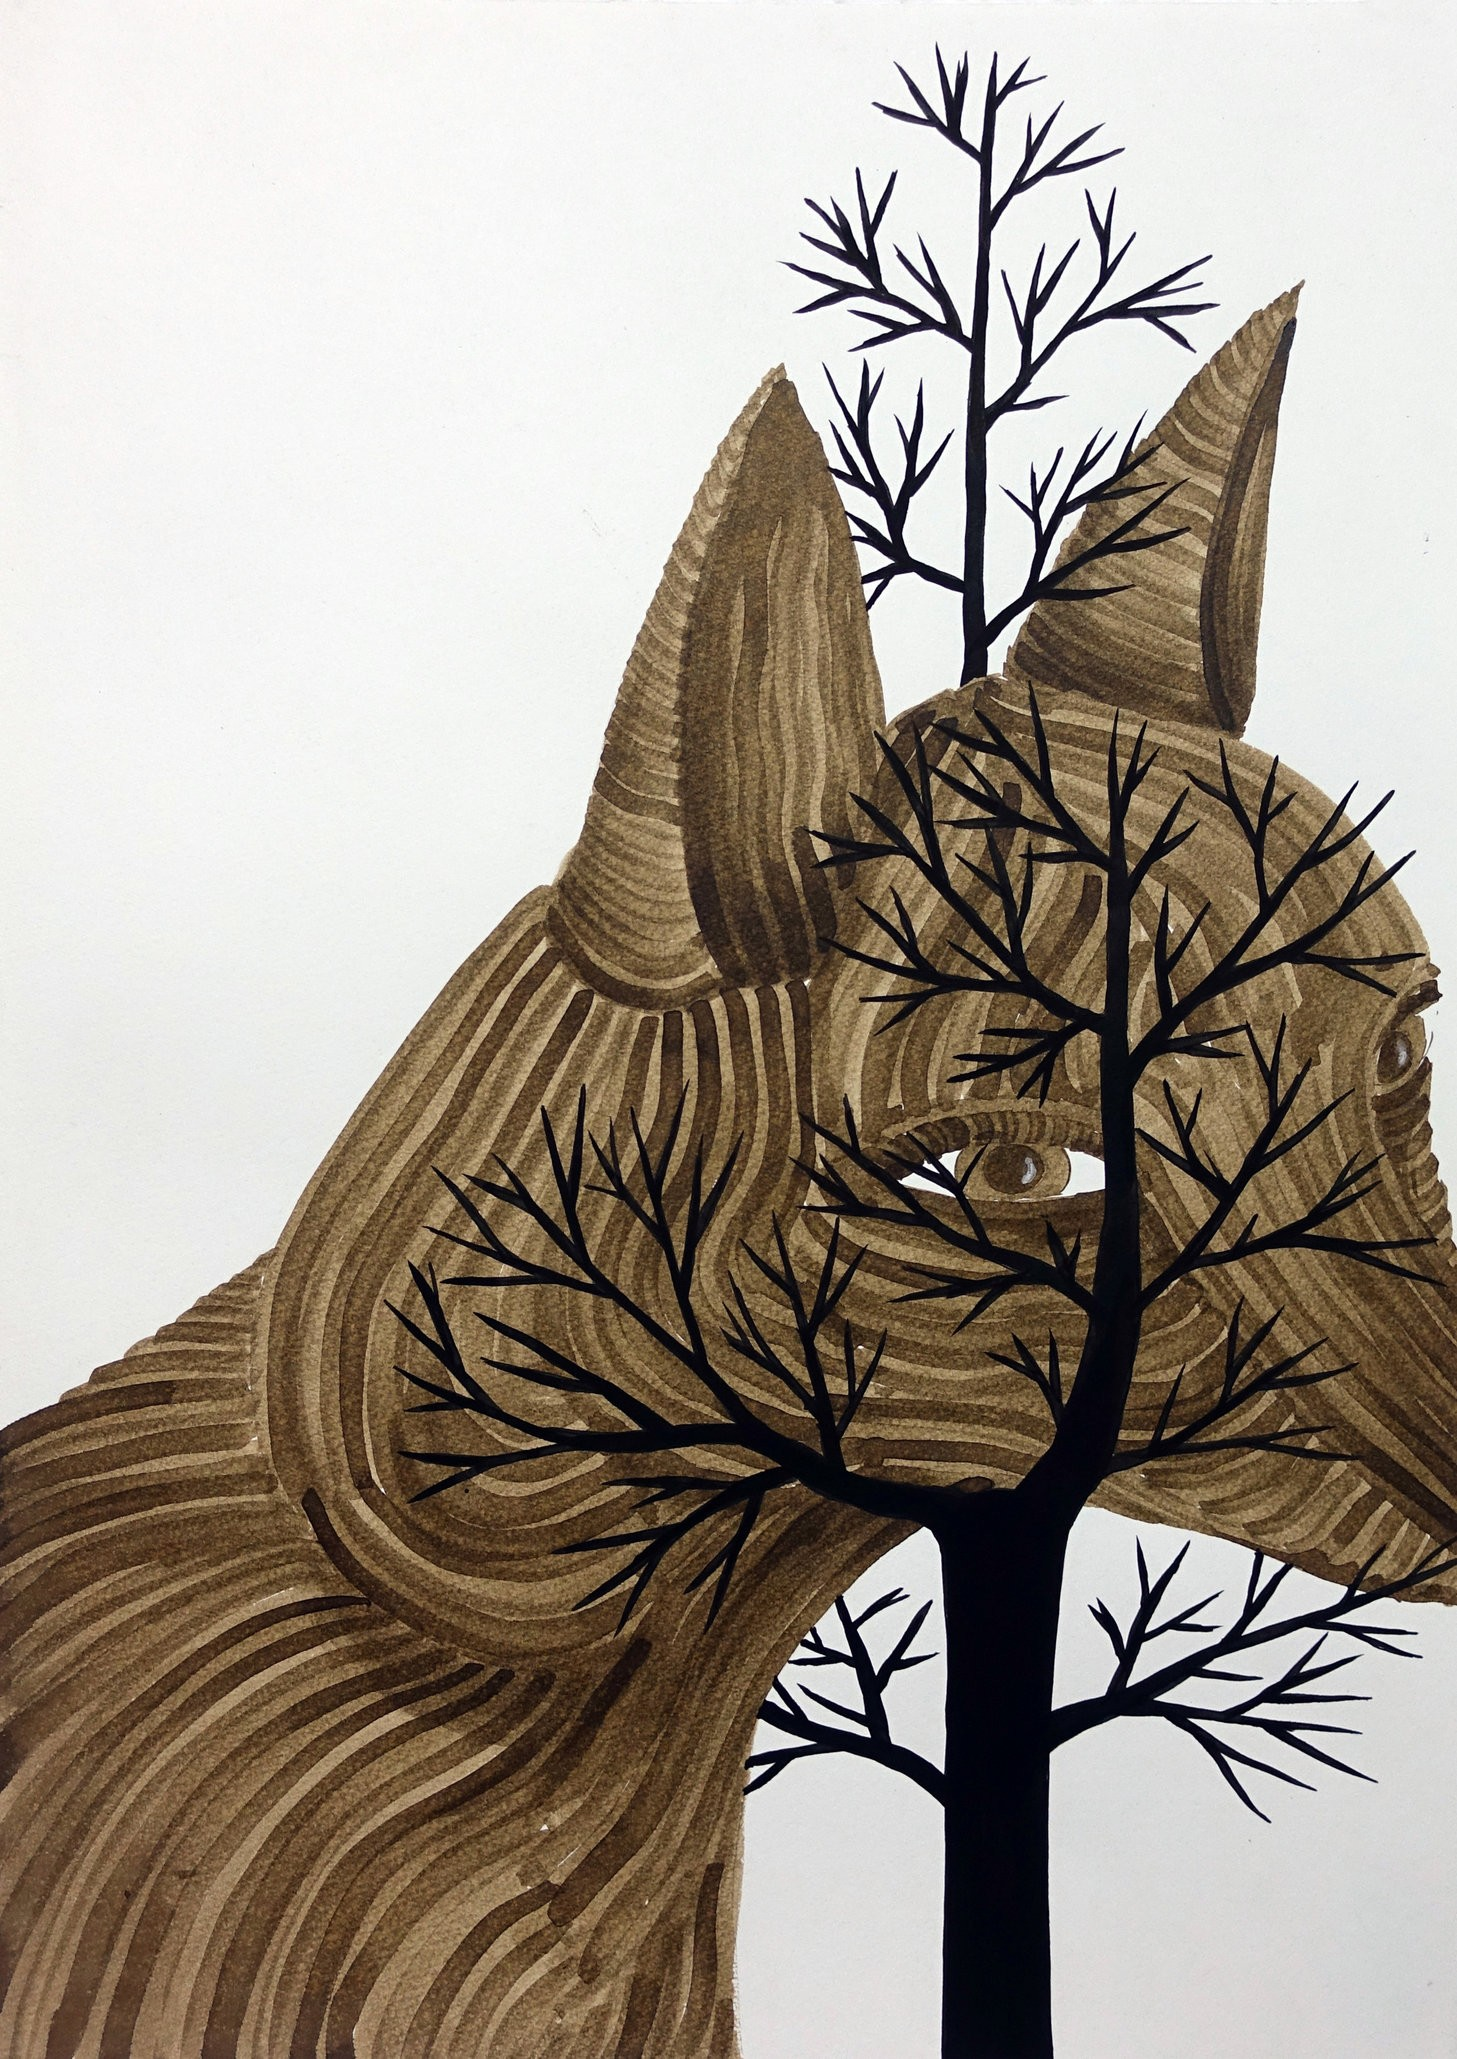 Klone, The Miseducation of (the Fox), 2015, Ink on paper, 70x50 cm